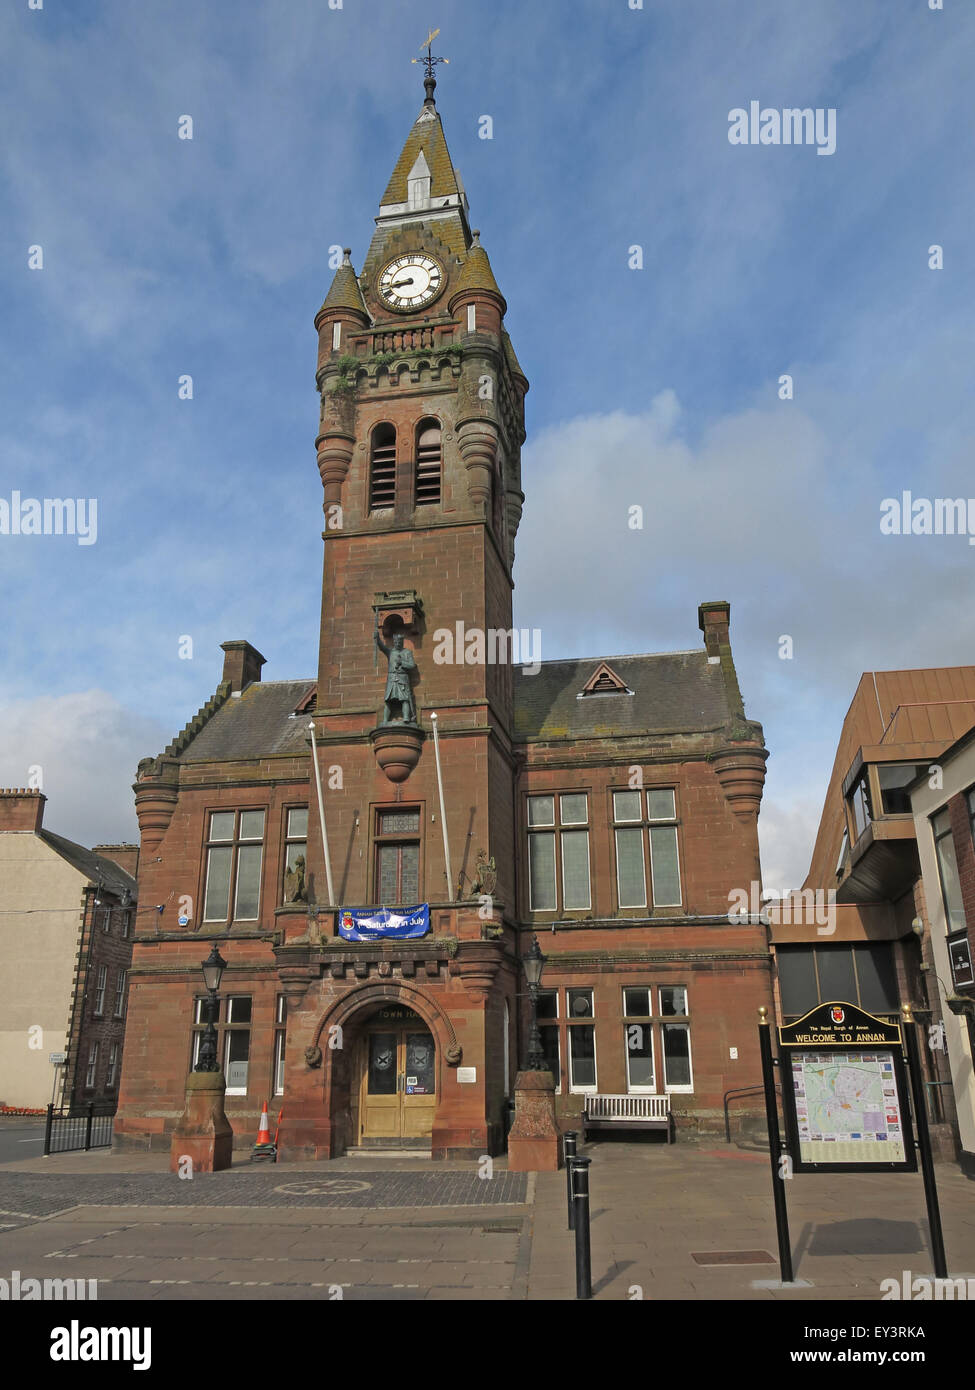 Annan town hall,Annan,Dumfries,&,Galloway,-,Municipal,buildings,Council,Offices,High,Street,Annan,DG12 6AQ,stone,historic,history,Victorian,royal,burgh,in,south-west,Scotland,sandstone,Dumfries and Galloway,GoTonySmith,Buy Pictures of,Buy Images Of